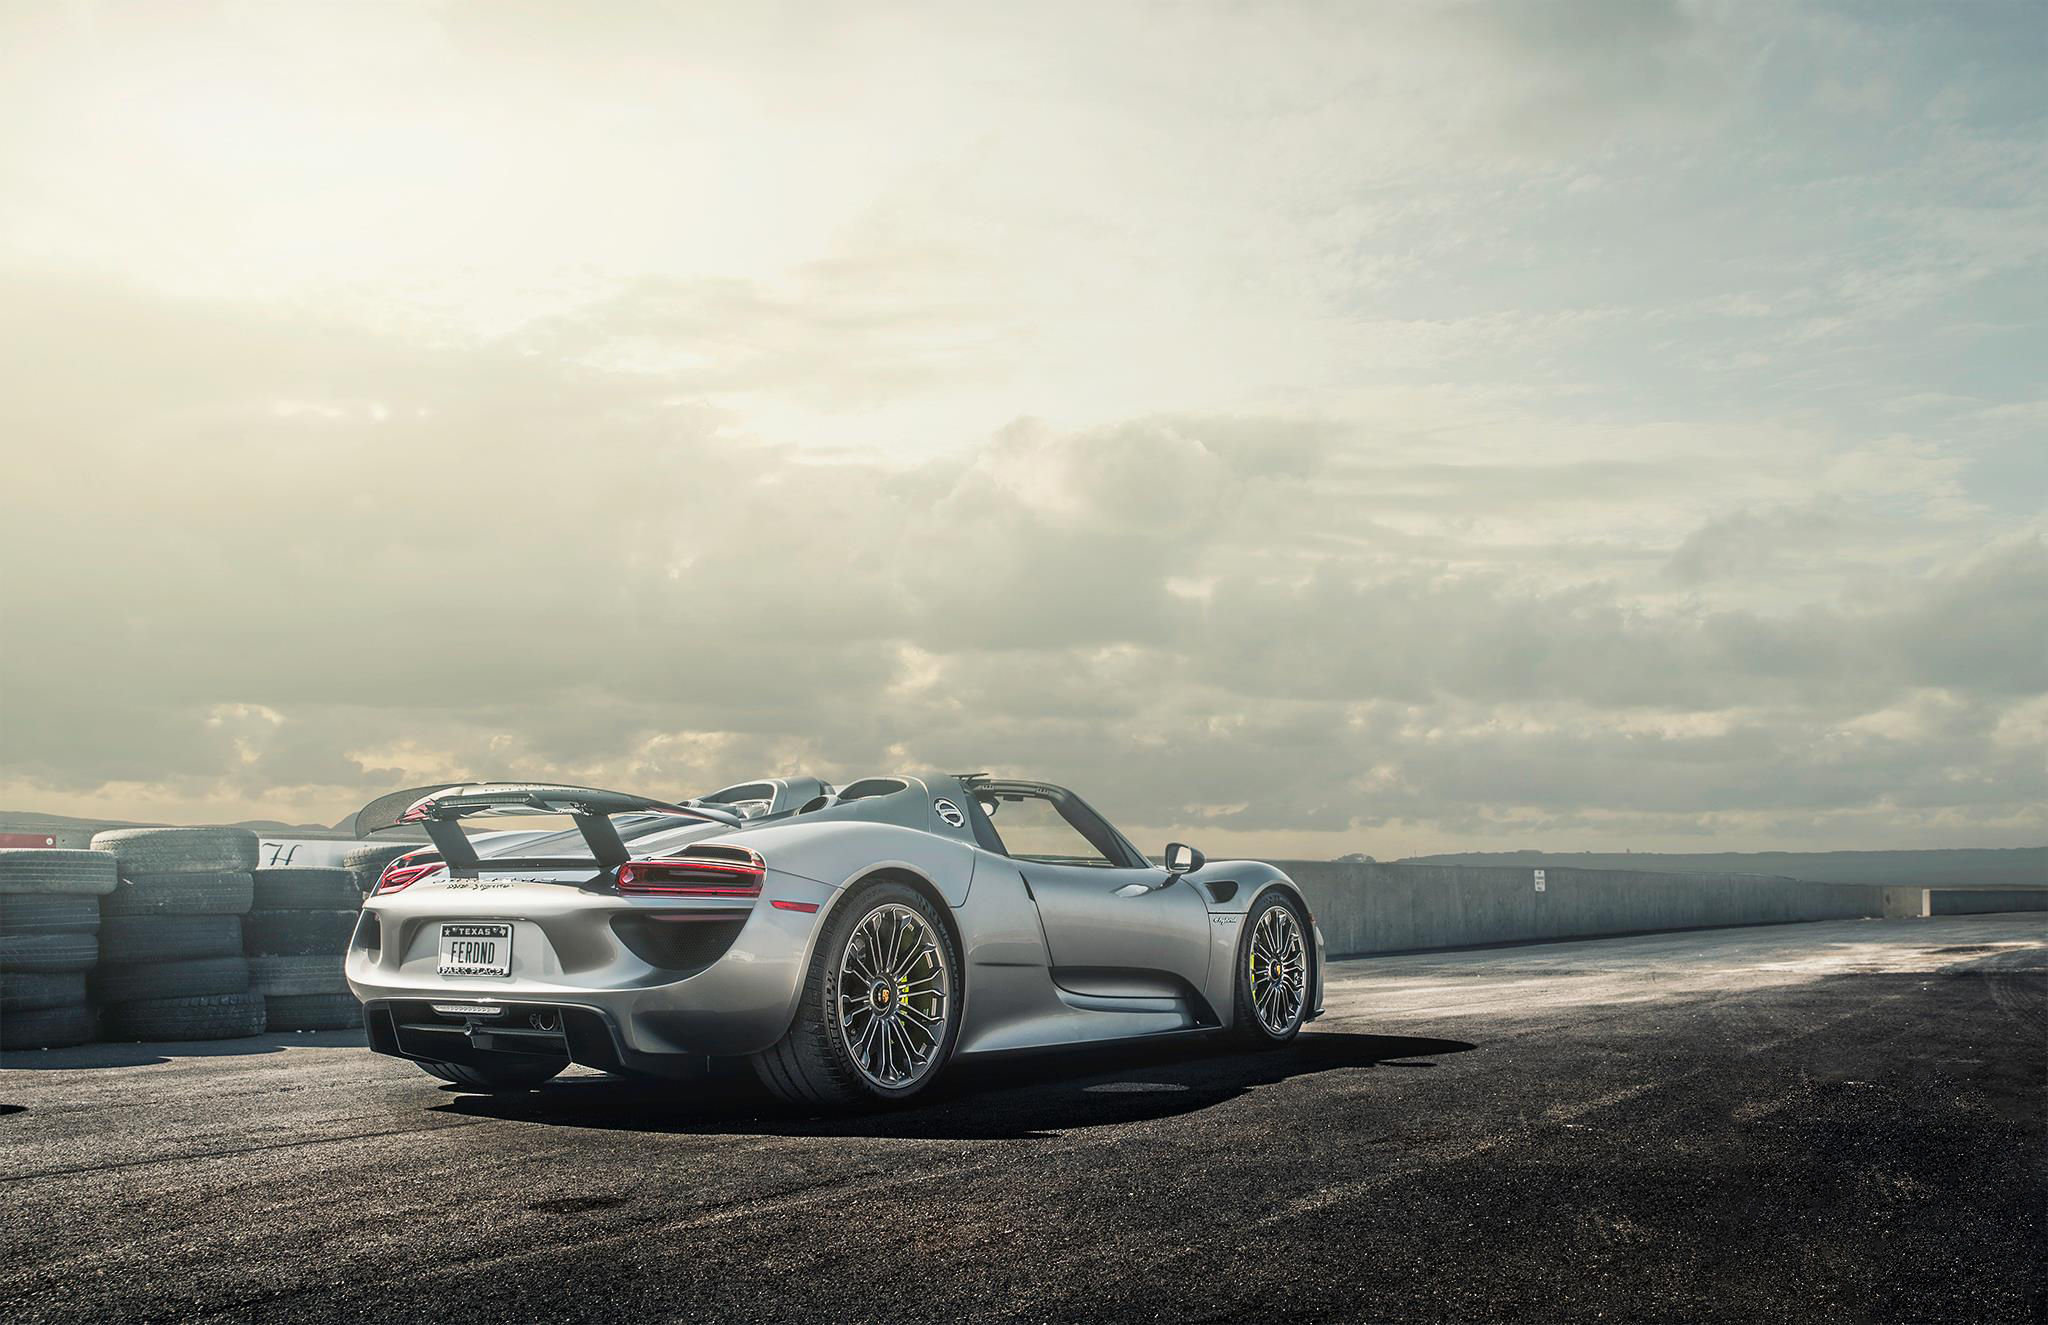 porsche 918 spyder hd wallpaper 2014 porsche 918 spyder wallpapers hd wallpapers 2015 porsche. Black Bedroom Furniture Sets. Home Design Ideas